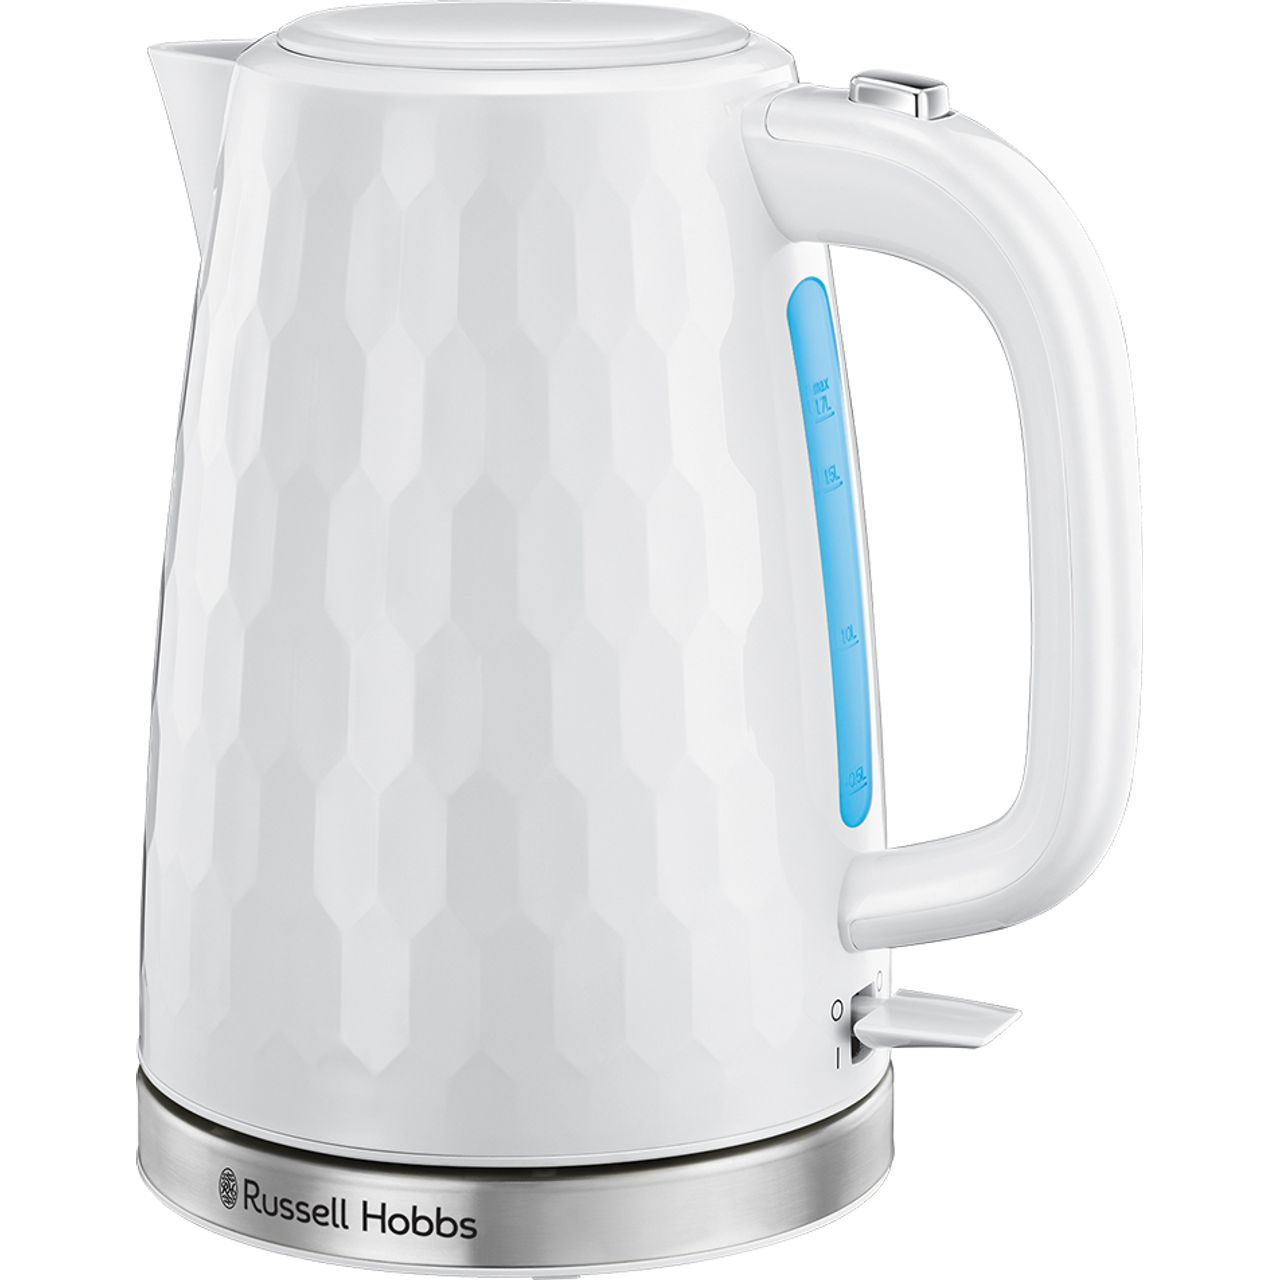 RUSSELL HOBBS Kettle Stylis Limescale